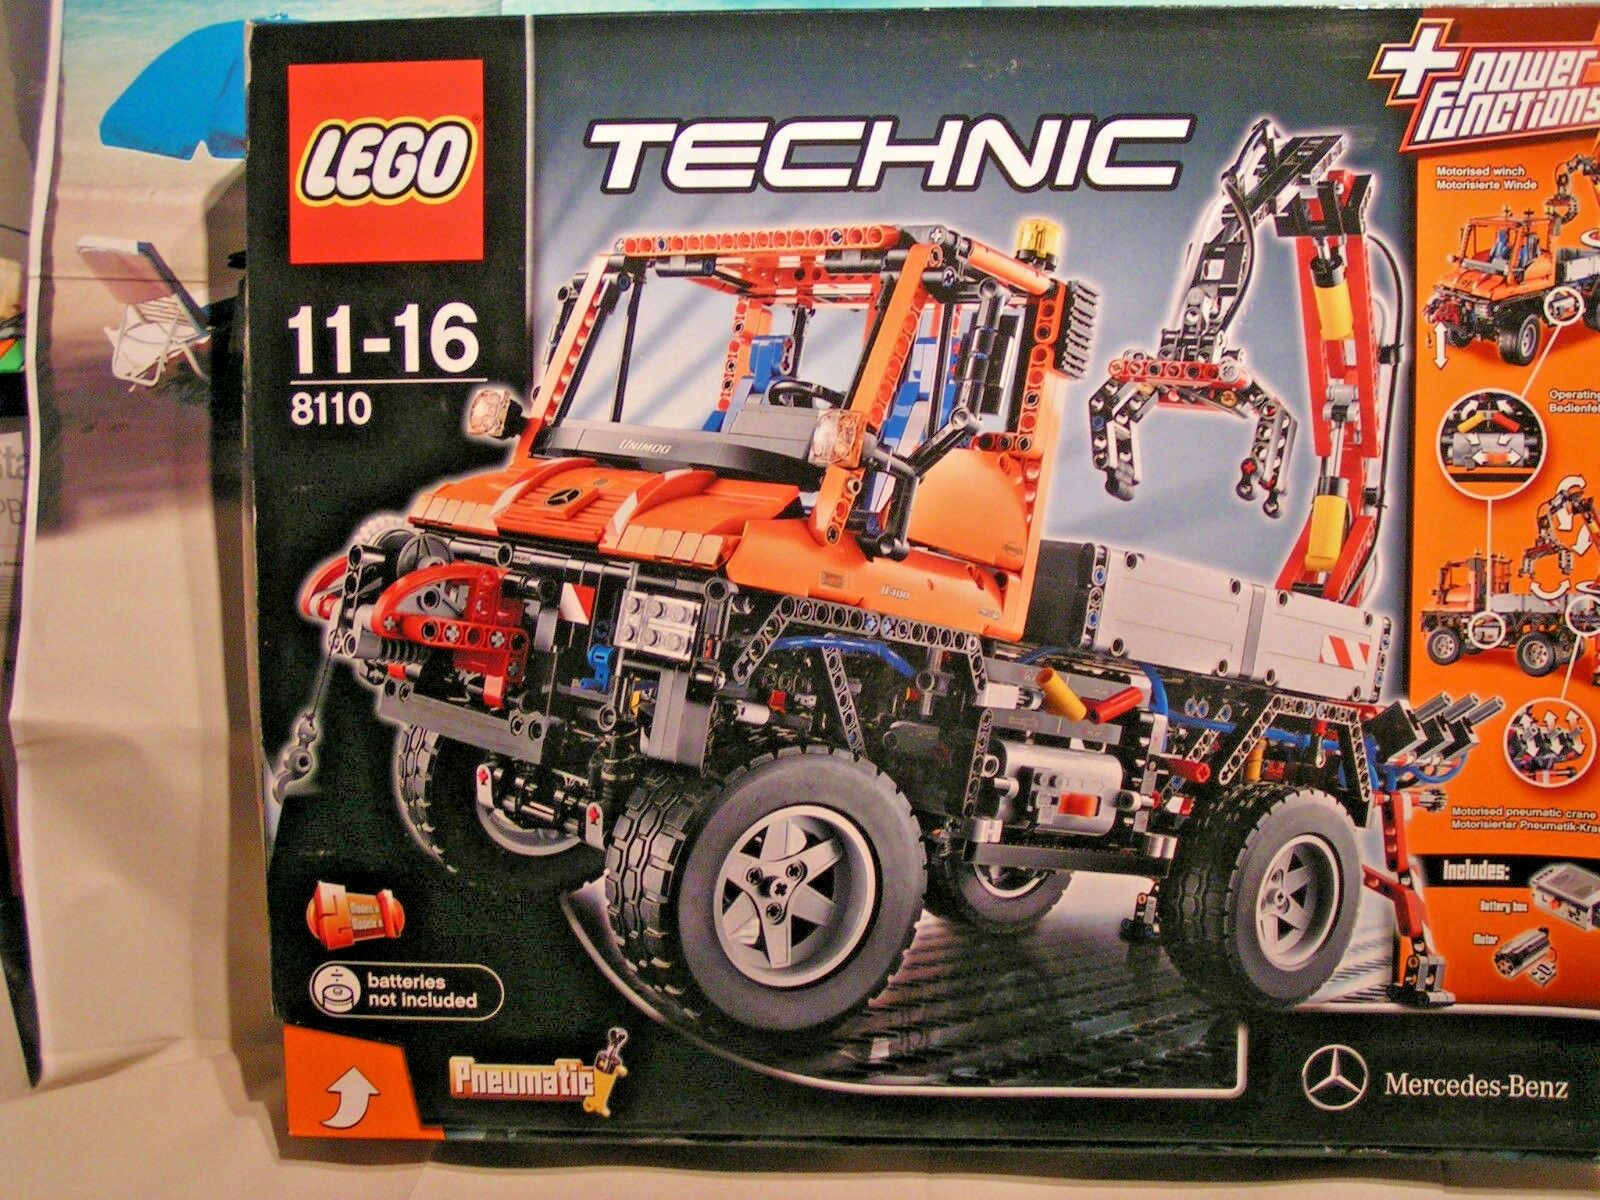 LEGO  TECHNIC  - TOUT TERRAIN MERCEDES-BENZ (POWER FUNCTIONS ref 8110)  COLLECTOR  promotions passionnantes